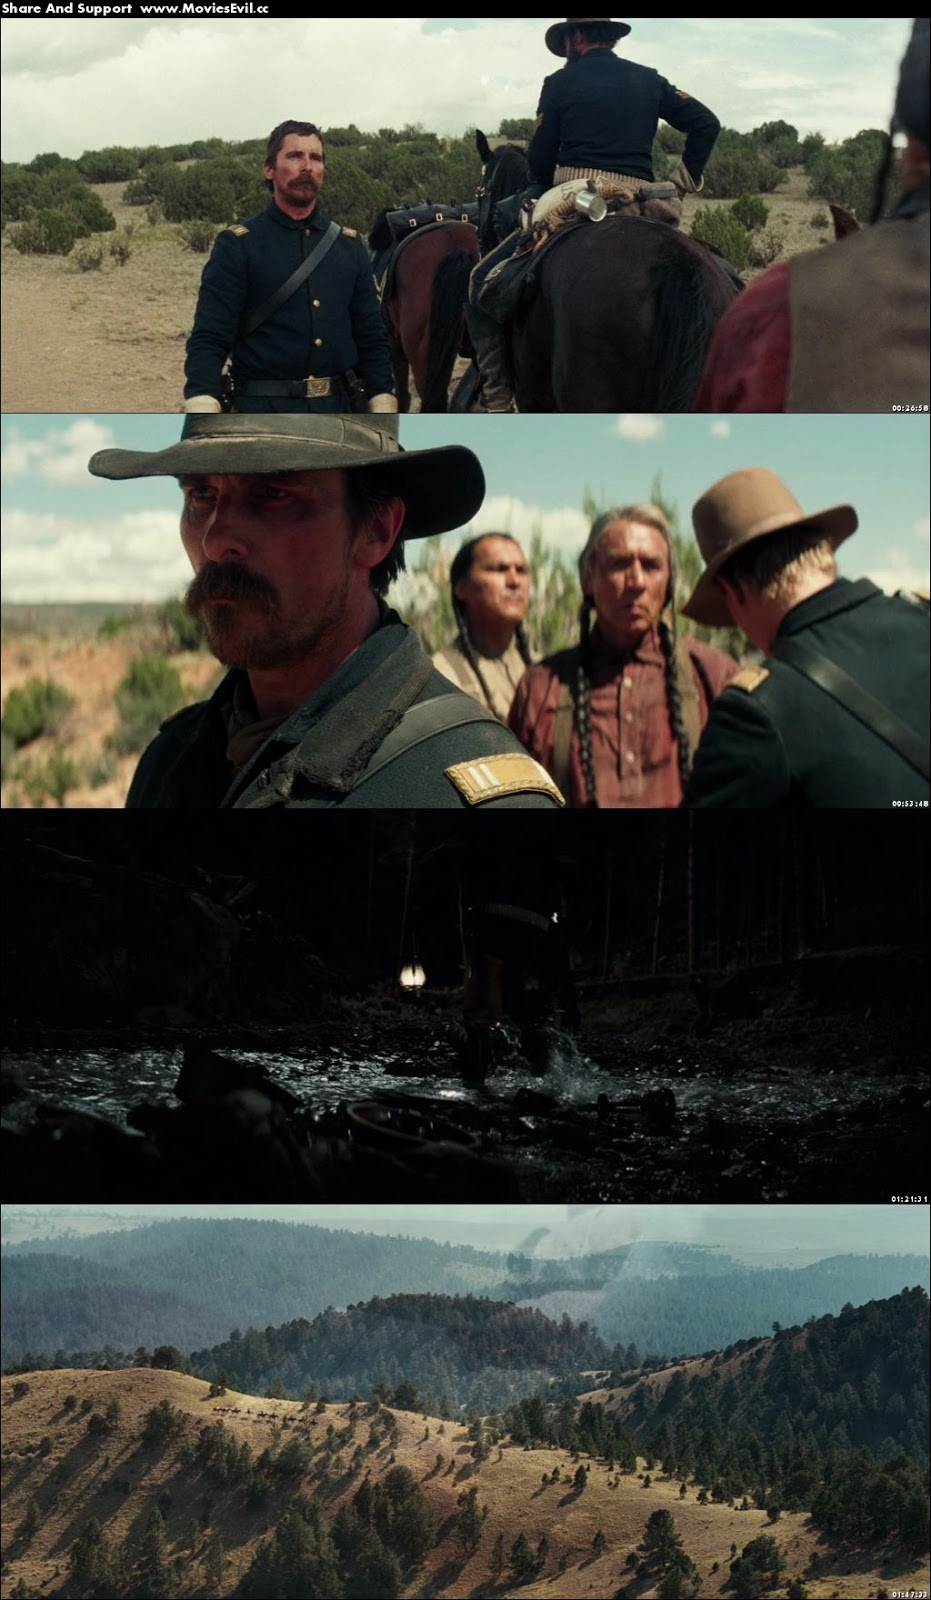 Hostiles 2017 English 720p BluRay x264 Free Download,Hostiles 2017 movie download,Hostiles 2017direct link download,Hostiles 2017 300 mb download,Hostiles 2017 watch online.Hostiles 2017 hindi dubbed download,Hostiles 2017 1080p Bluray download,Hostiles 2017 dual audio 720p bluray download,Hostiles 2017 with english subtitle download